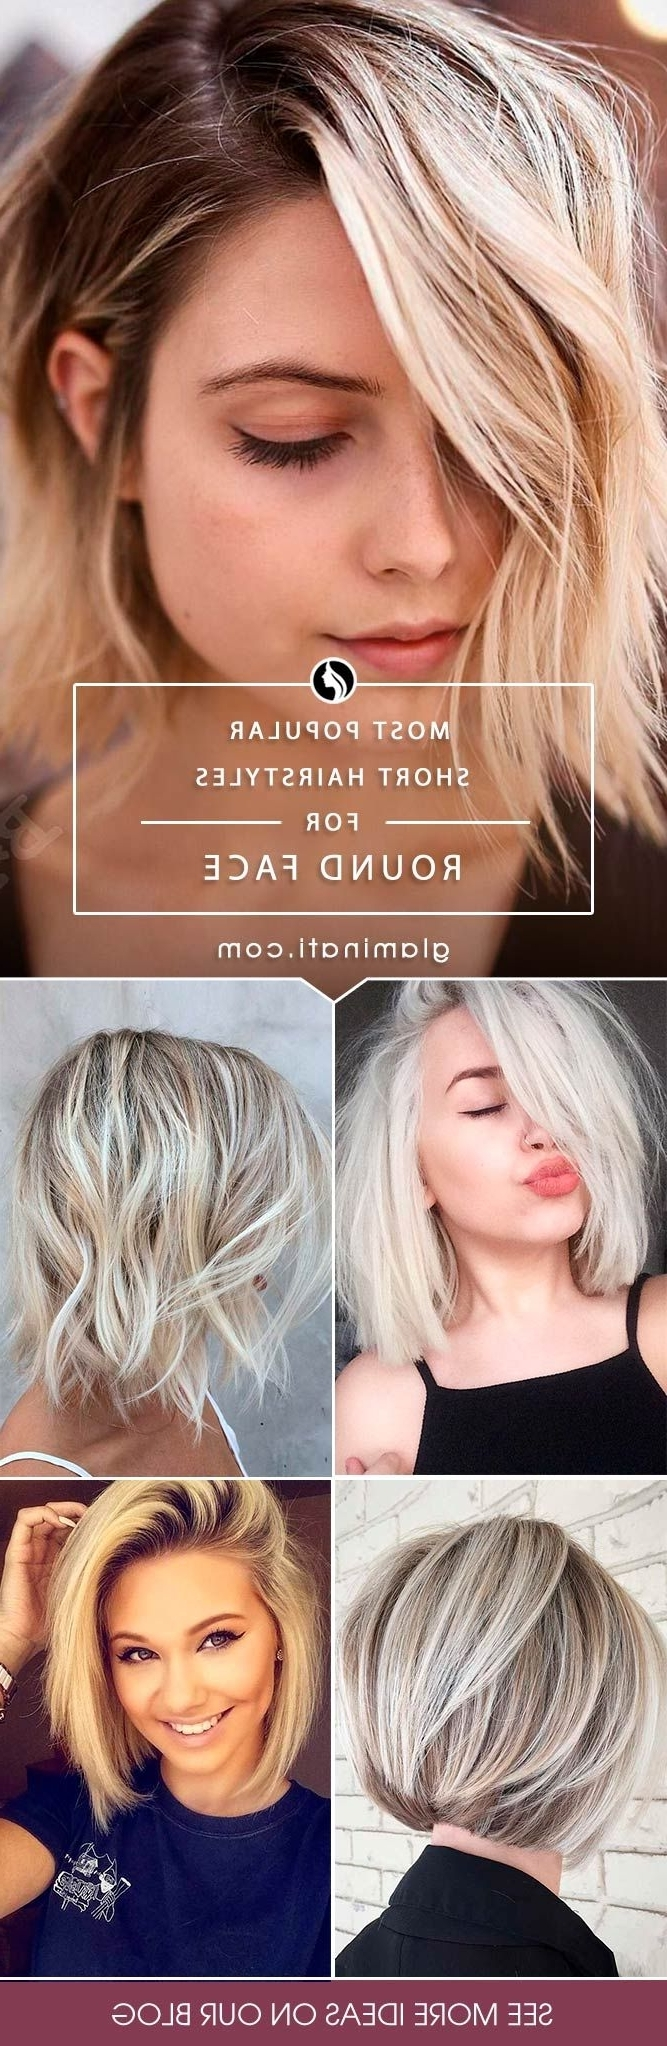 Widely Used Shaggy Short Hairstyles For Round Faces With The 25+ Best Short Hairstyles Round Face Ideas On Pinterest (View 8 of 15)